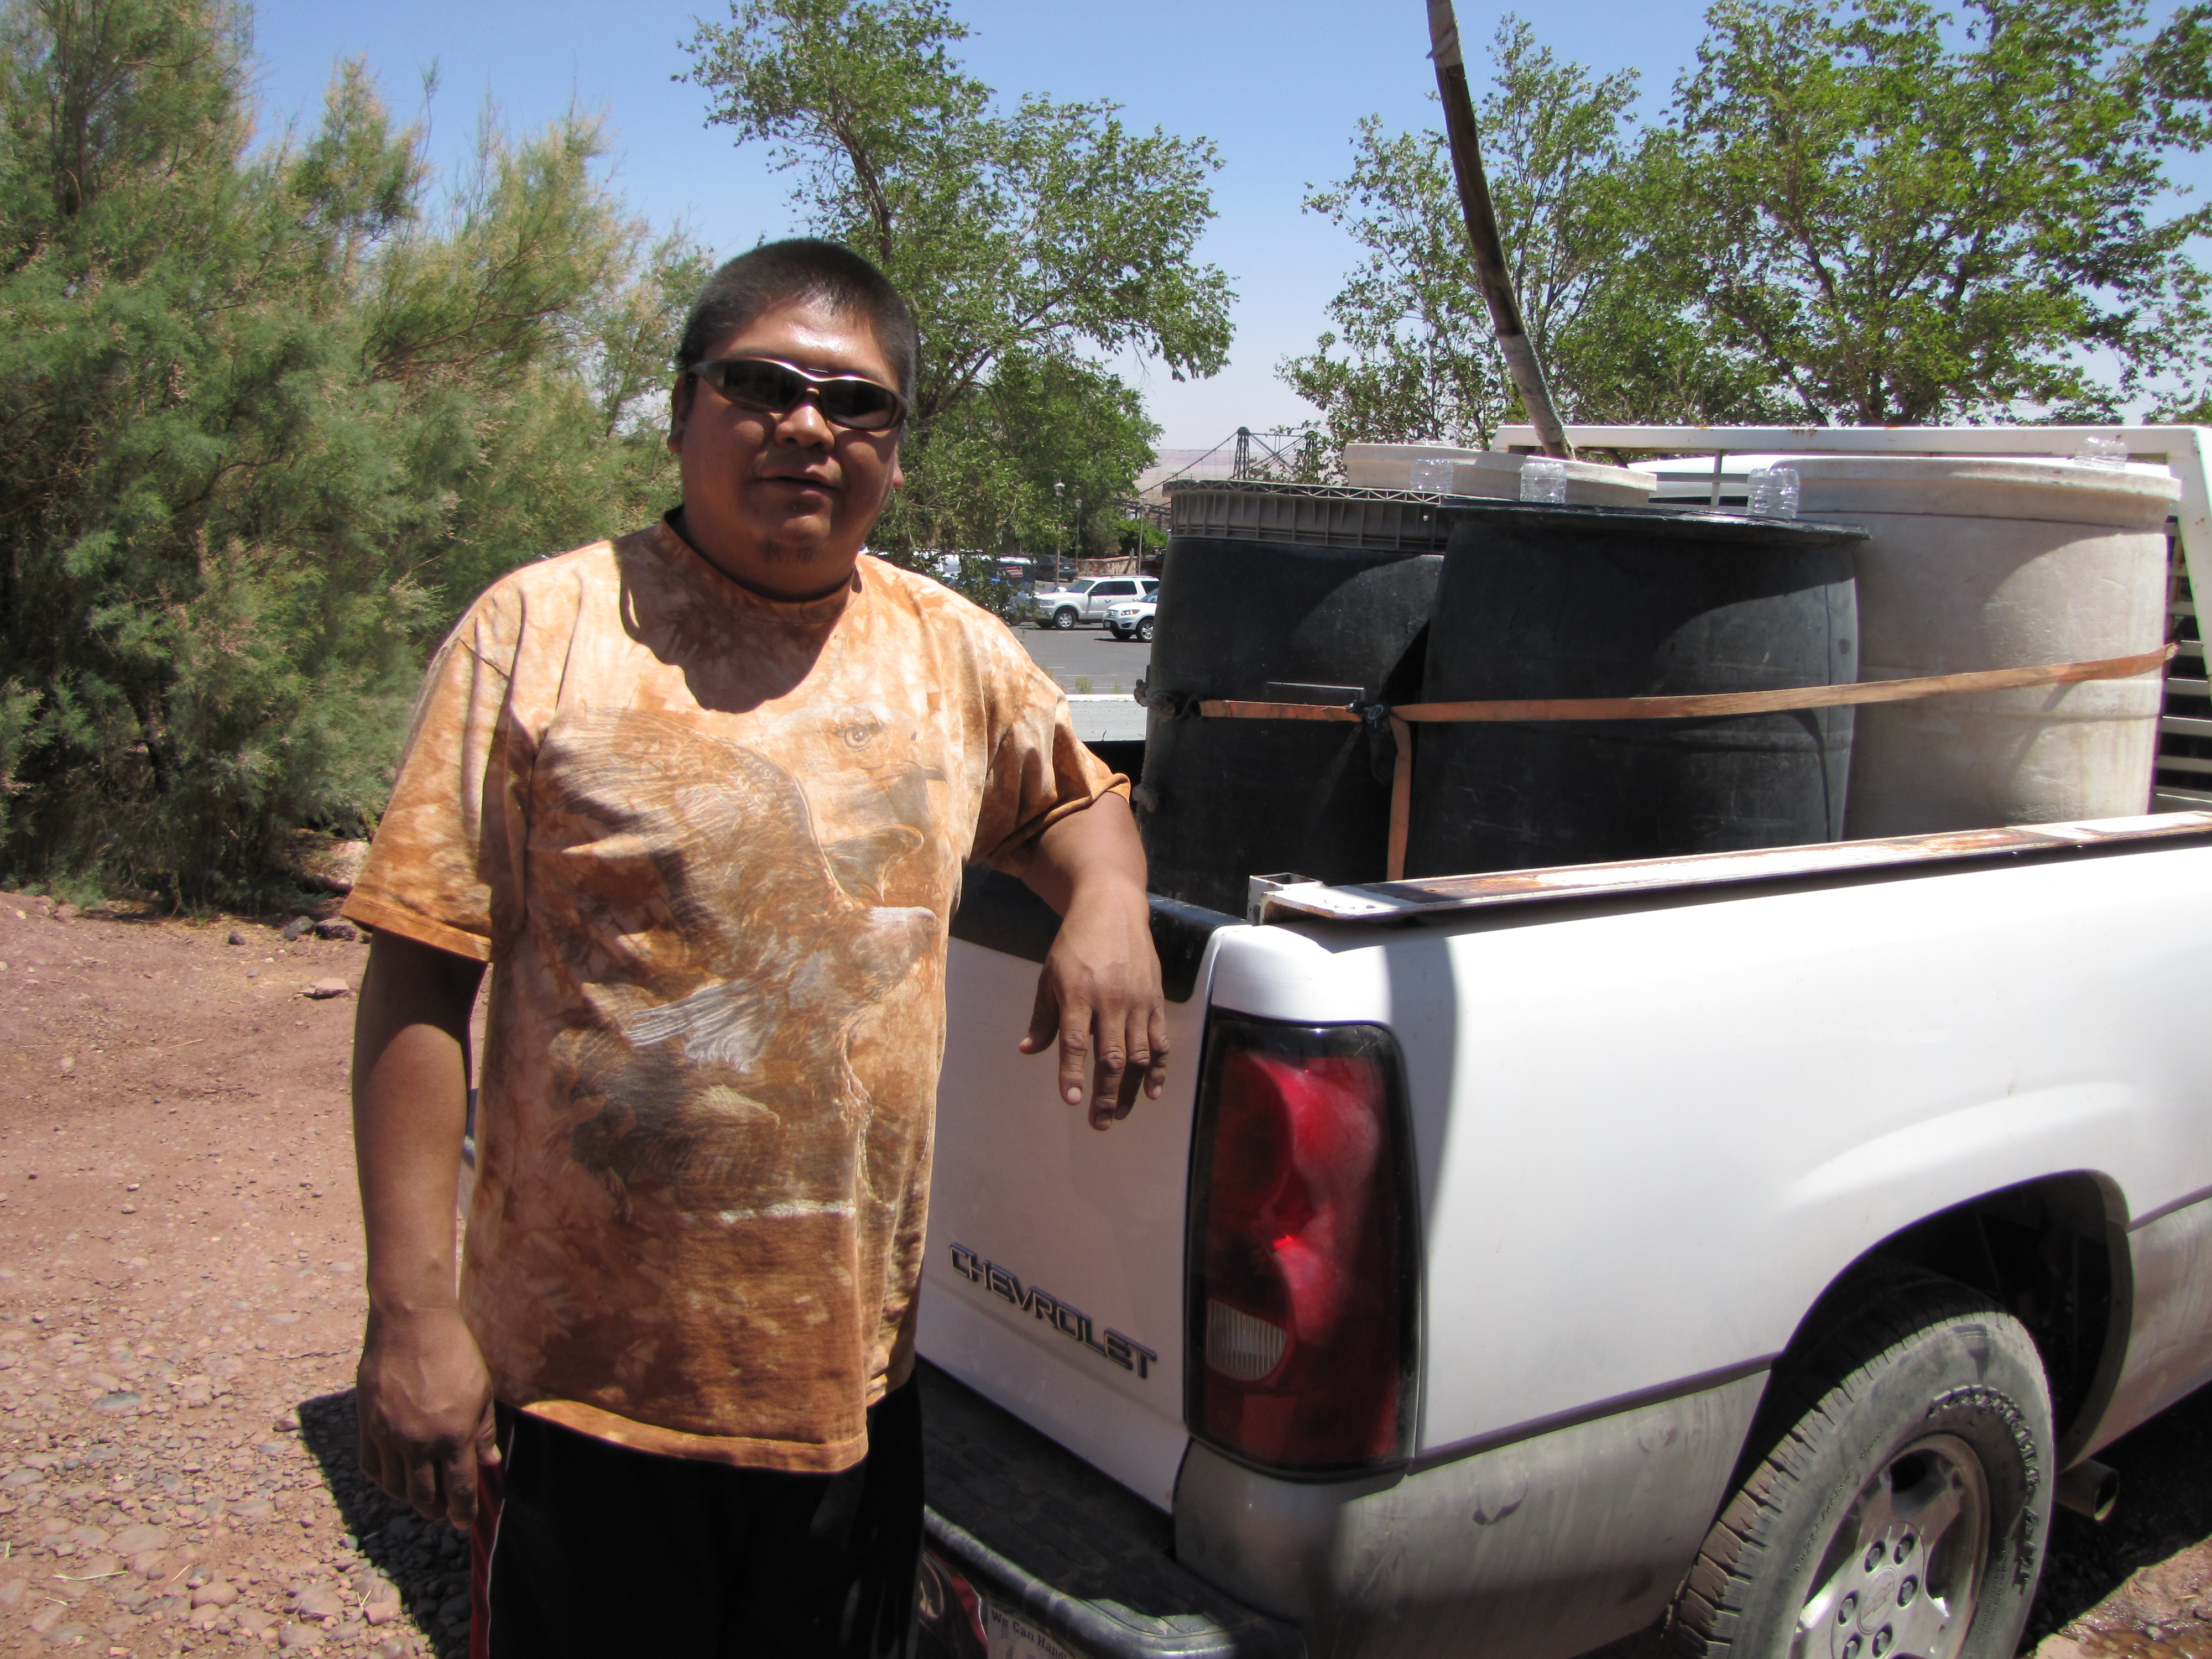 Ricky Jensen drives 12 miles to Cameron, AZ to get water for his grandmother's sheep and another 25 miles for drinking water.